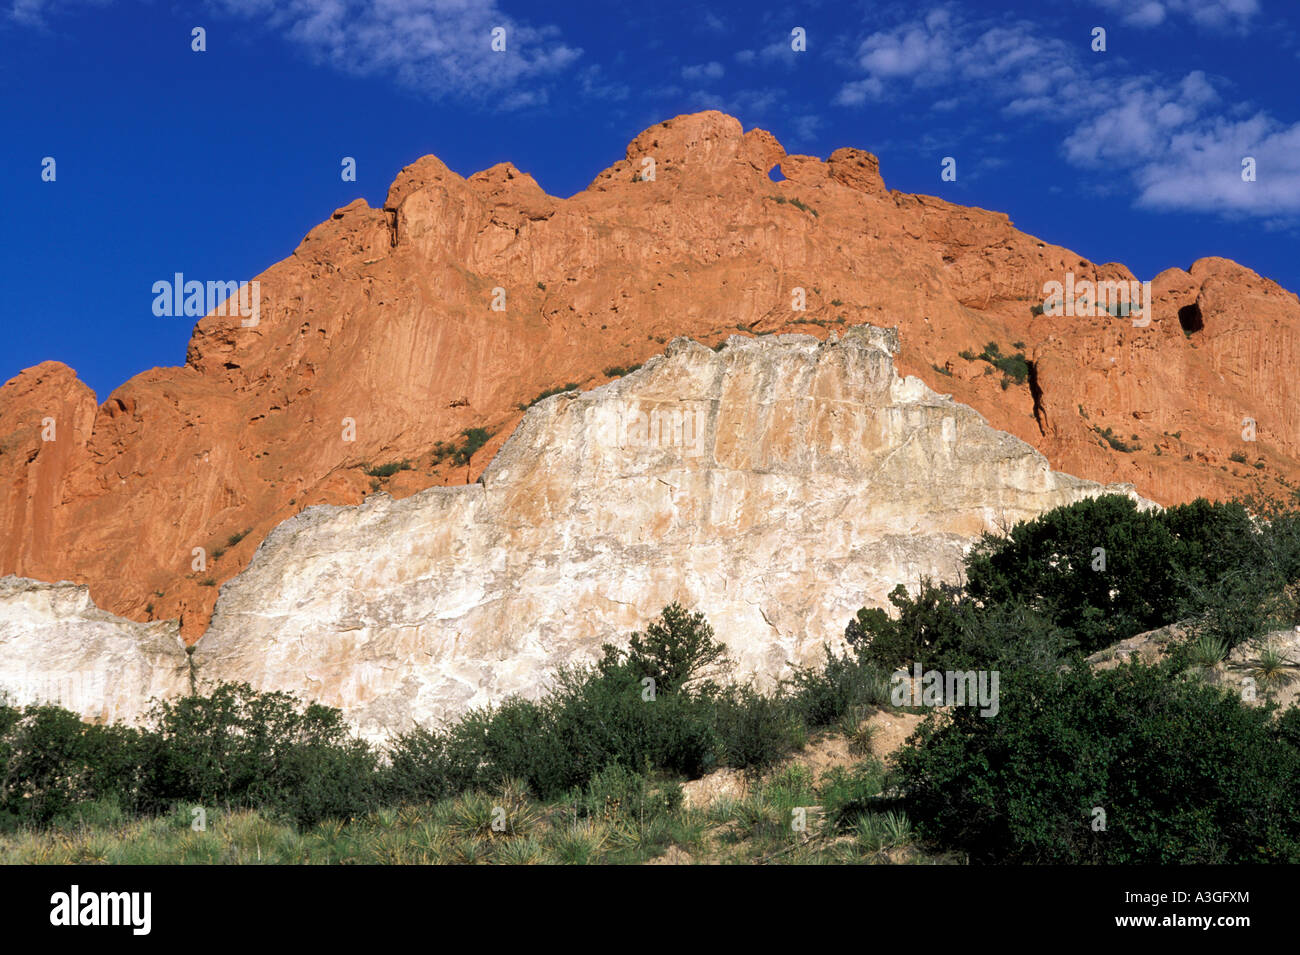 Kissing Camels One Of The Signature Rock Formations In